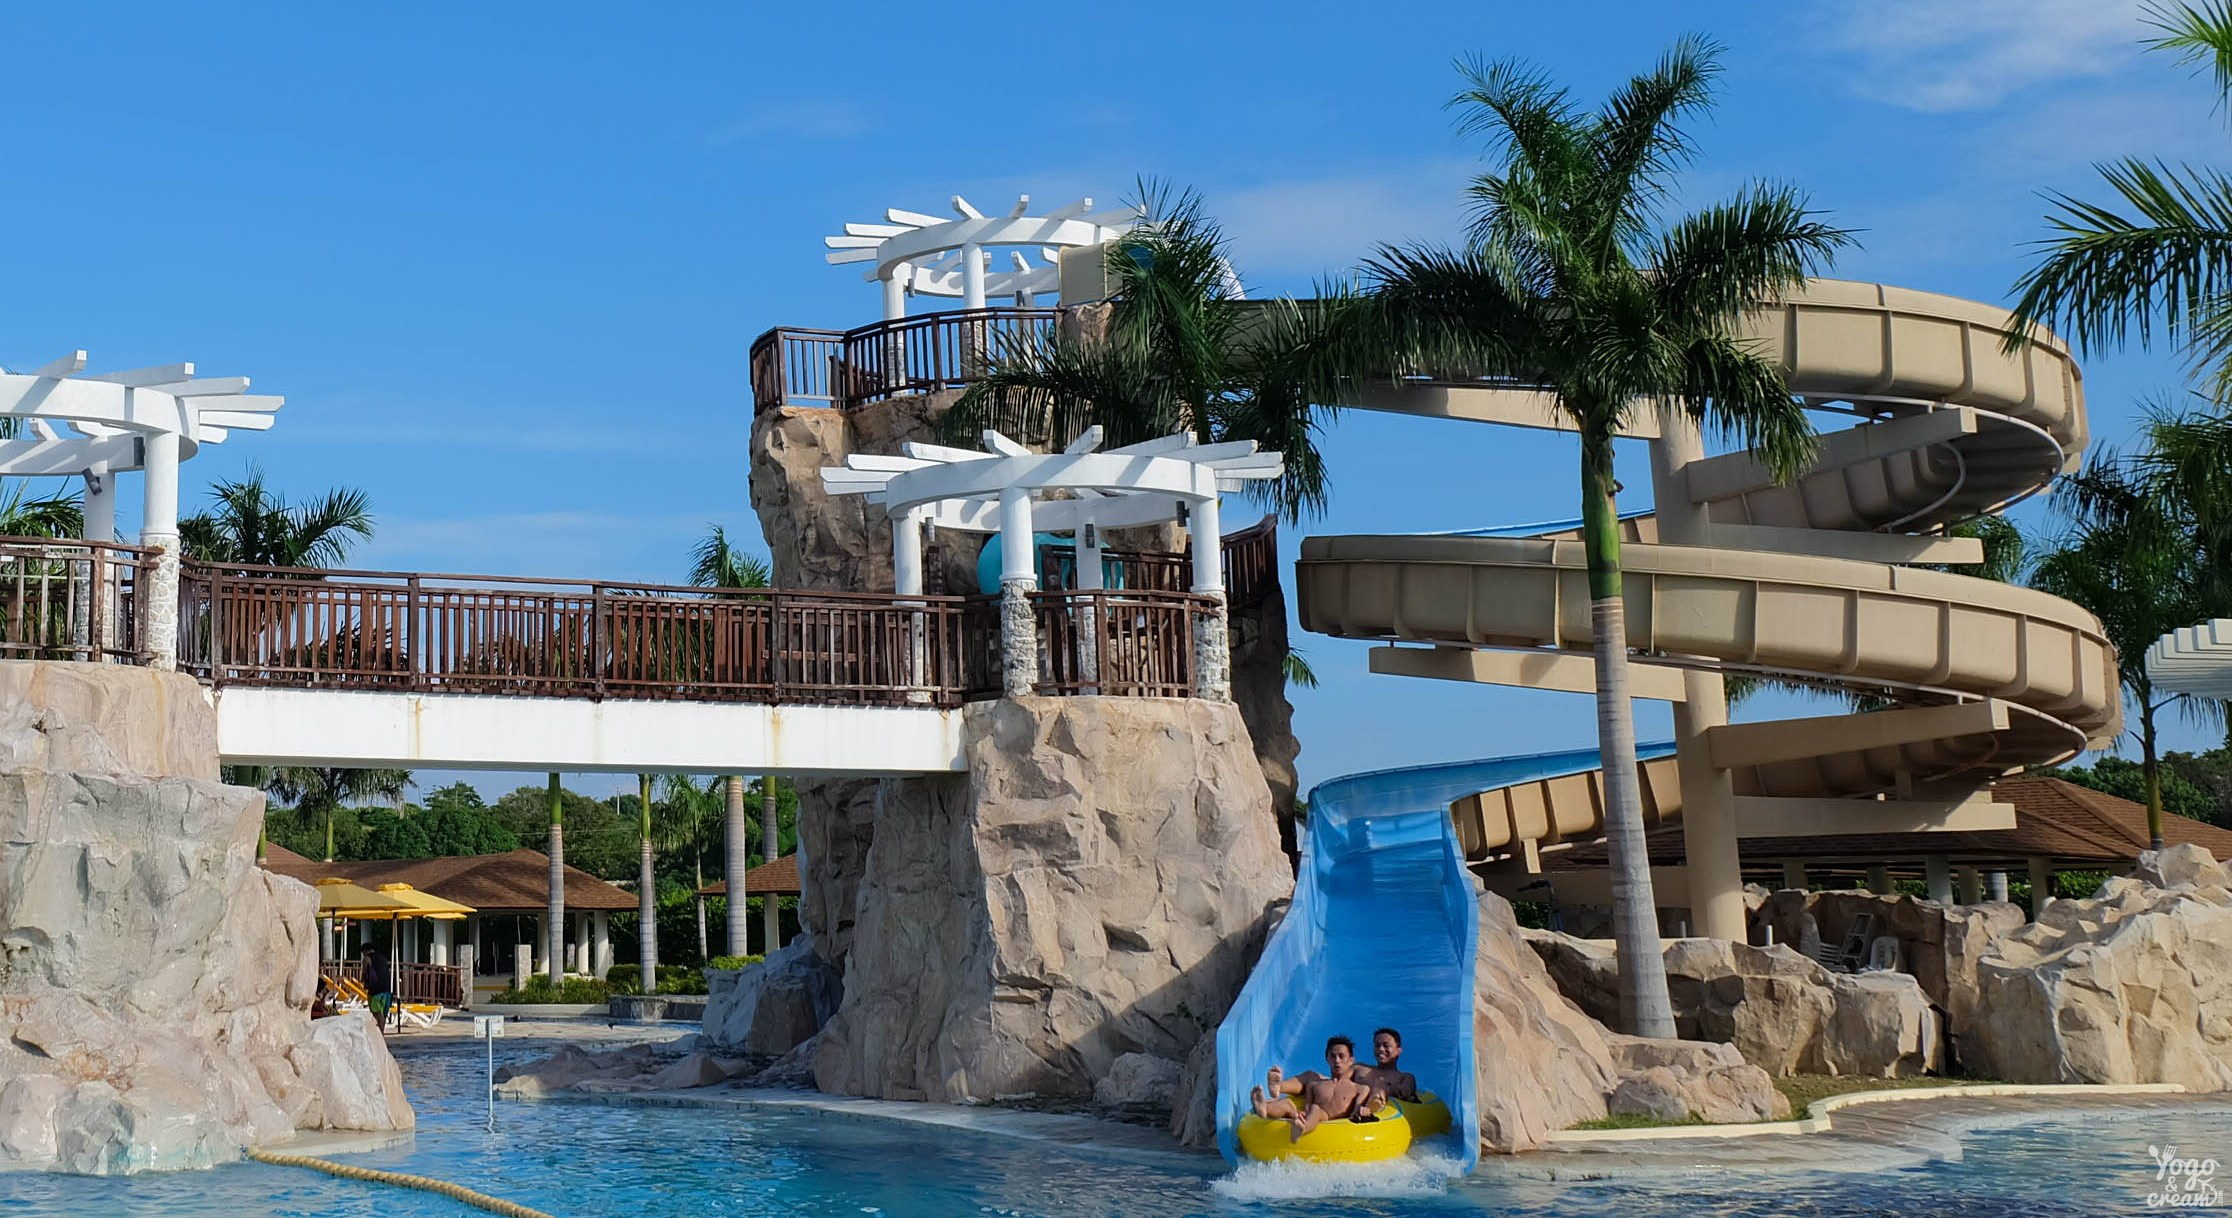 Bask Under The Sun, And Enjoy Recreational Activities At Aquaria Water Park  Located In Calatagan Batangas. This Resort Is Equipped With Giant Pool  Slides, ...